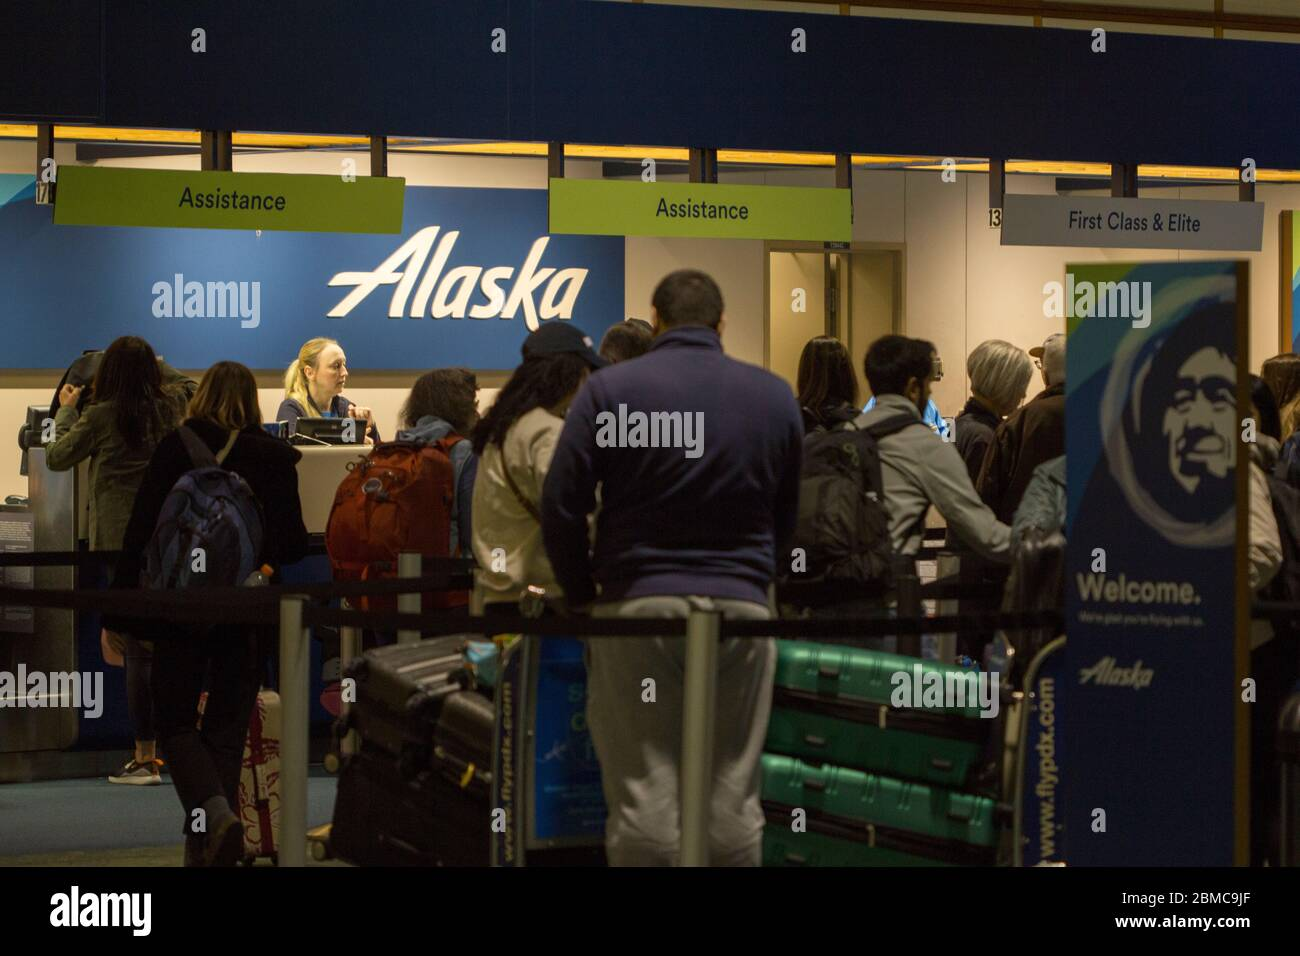 Passengers waiting in line to check their luggages at the Alaska Airlines check-in desk in Portland International Airport at night on Feb 13, 2020. Stock Photo